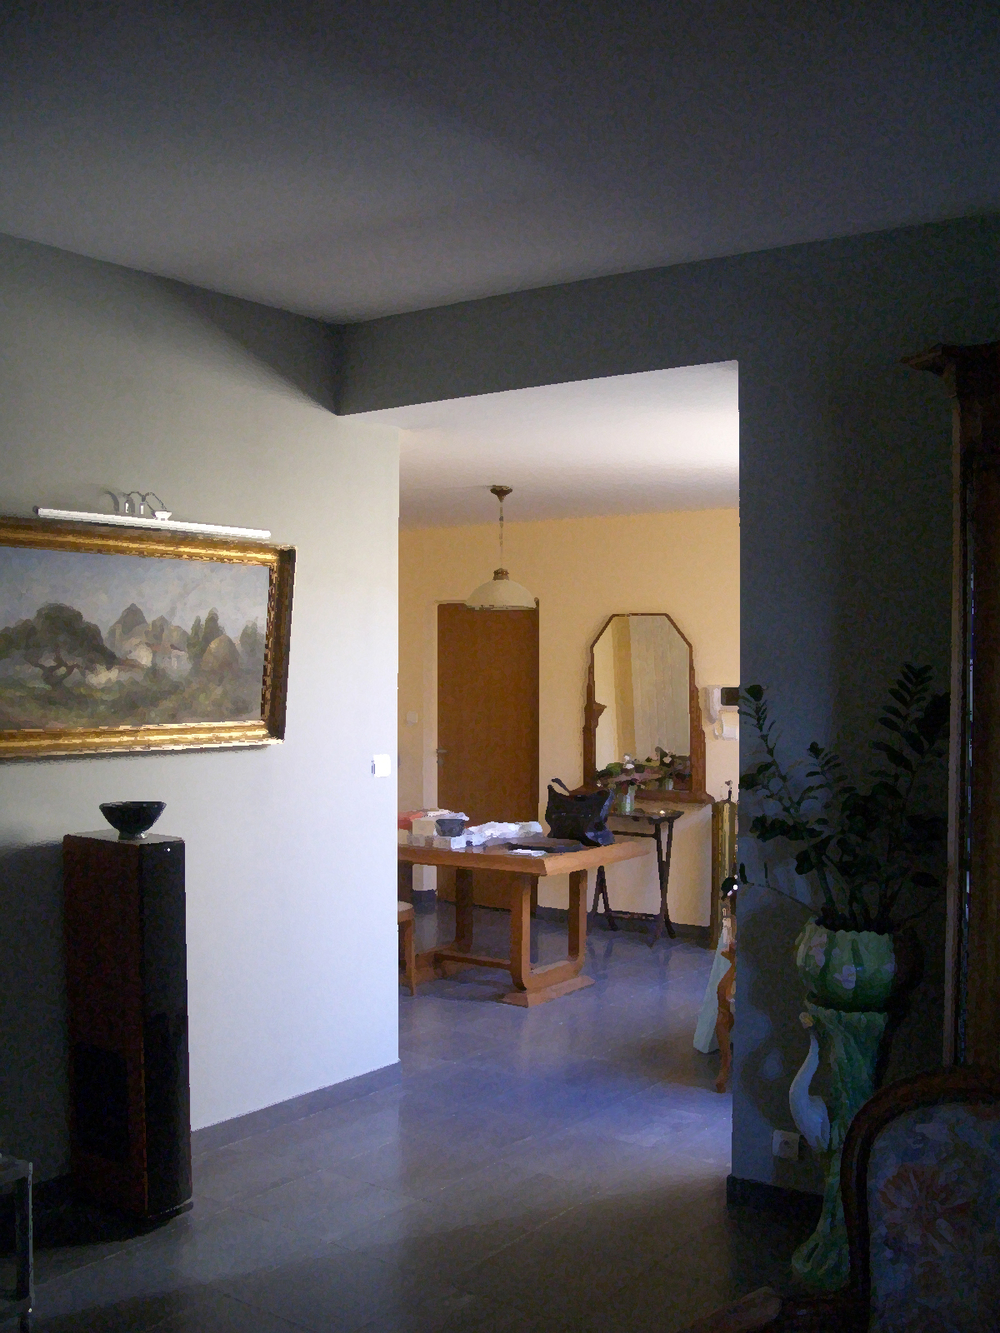 ​​The plot of land is not large so we developed the house in harmony with the garden to create a seamless experience as you walk through this slice of country side. They will enter from the street through a gate opening into a wooded area planted with camellias, azaleas and rhododendrons. They will then reach a clearing facing the house. As they enter the house, they will see the garden that extends beyond the living area at the back of the property. In the foreground is a meadow and the background is planted with a screen of pine and other dune vegetation as if the sea was just beyond.